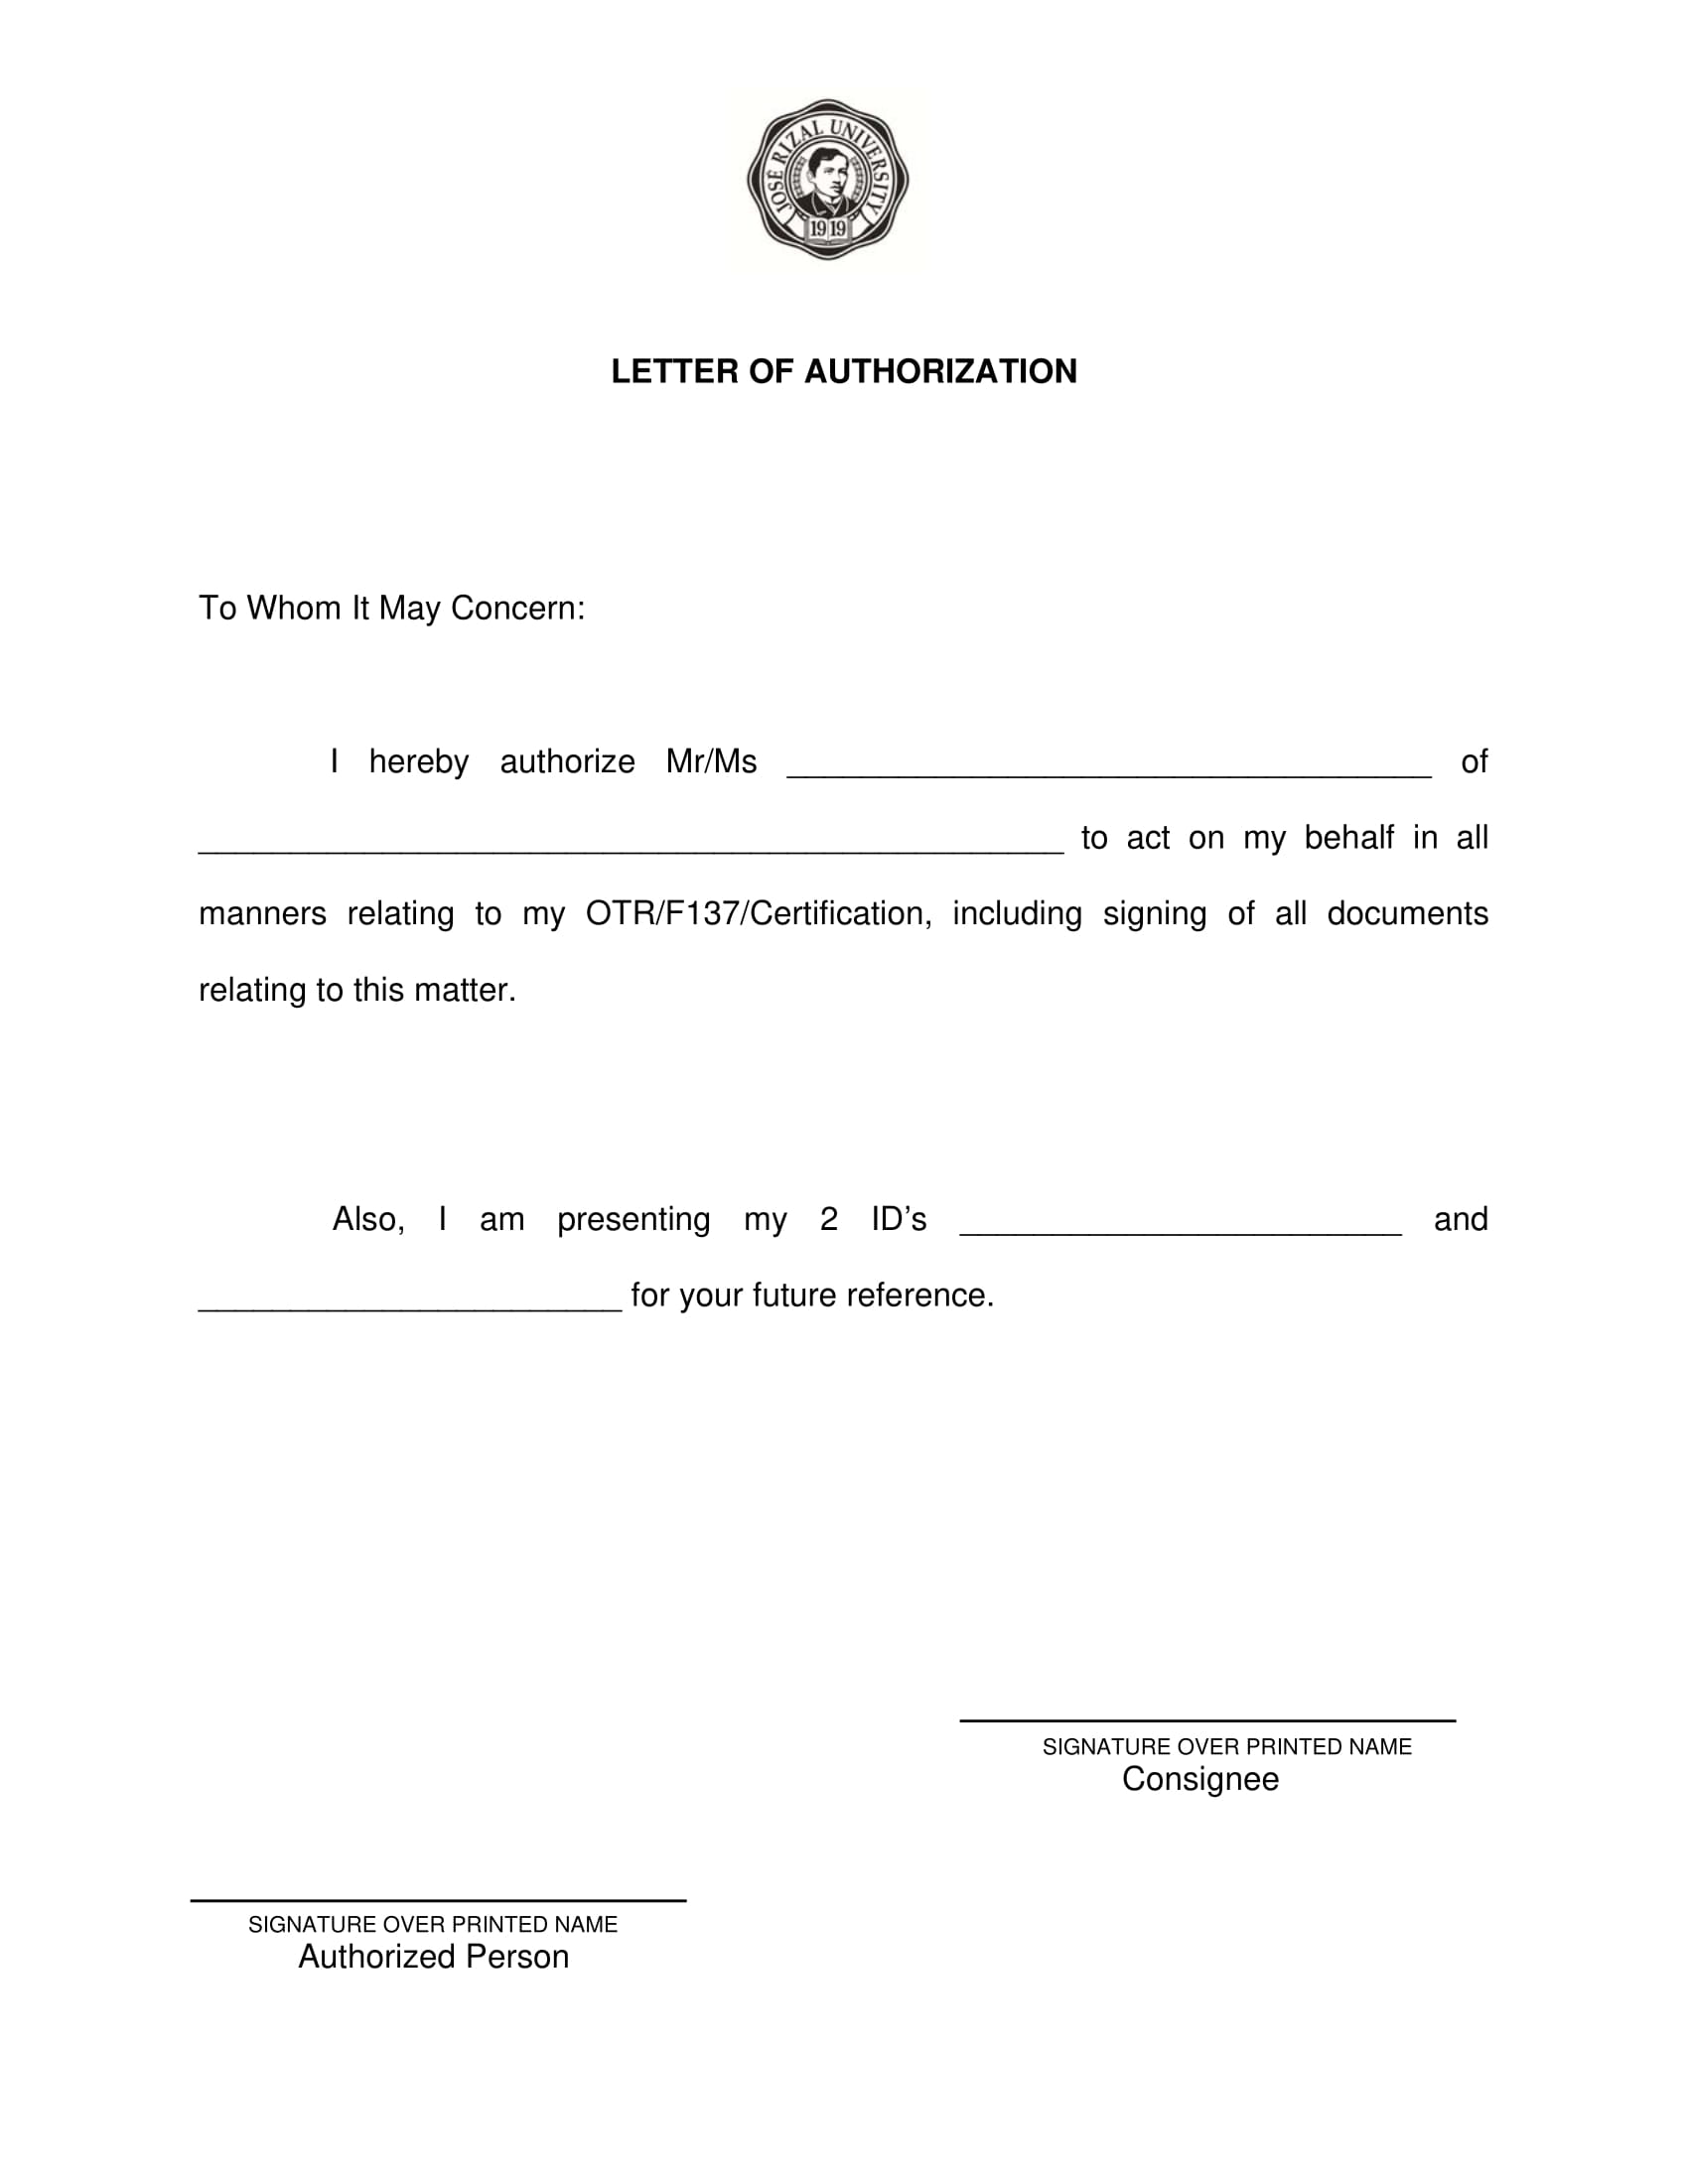 basic letter of authorization to act on behalf example 1